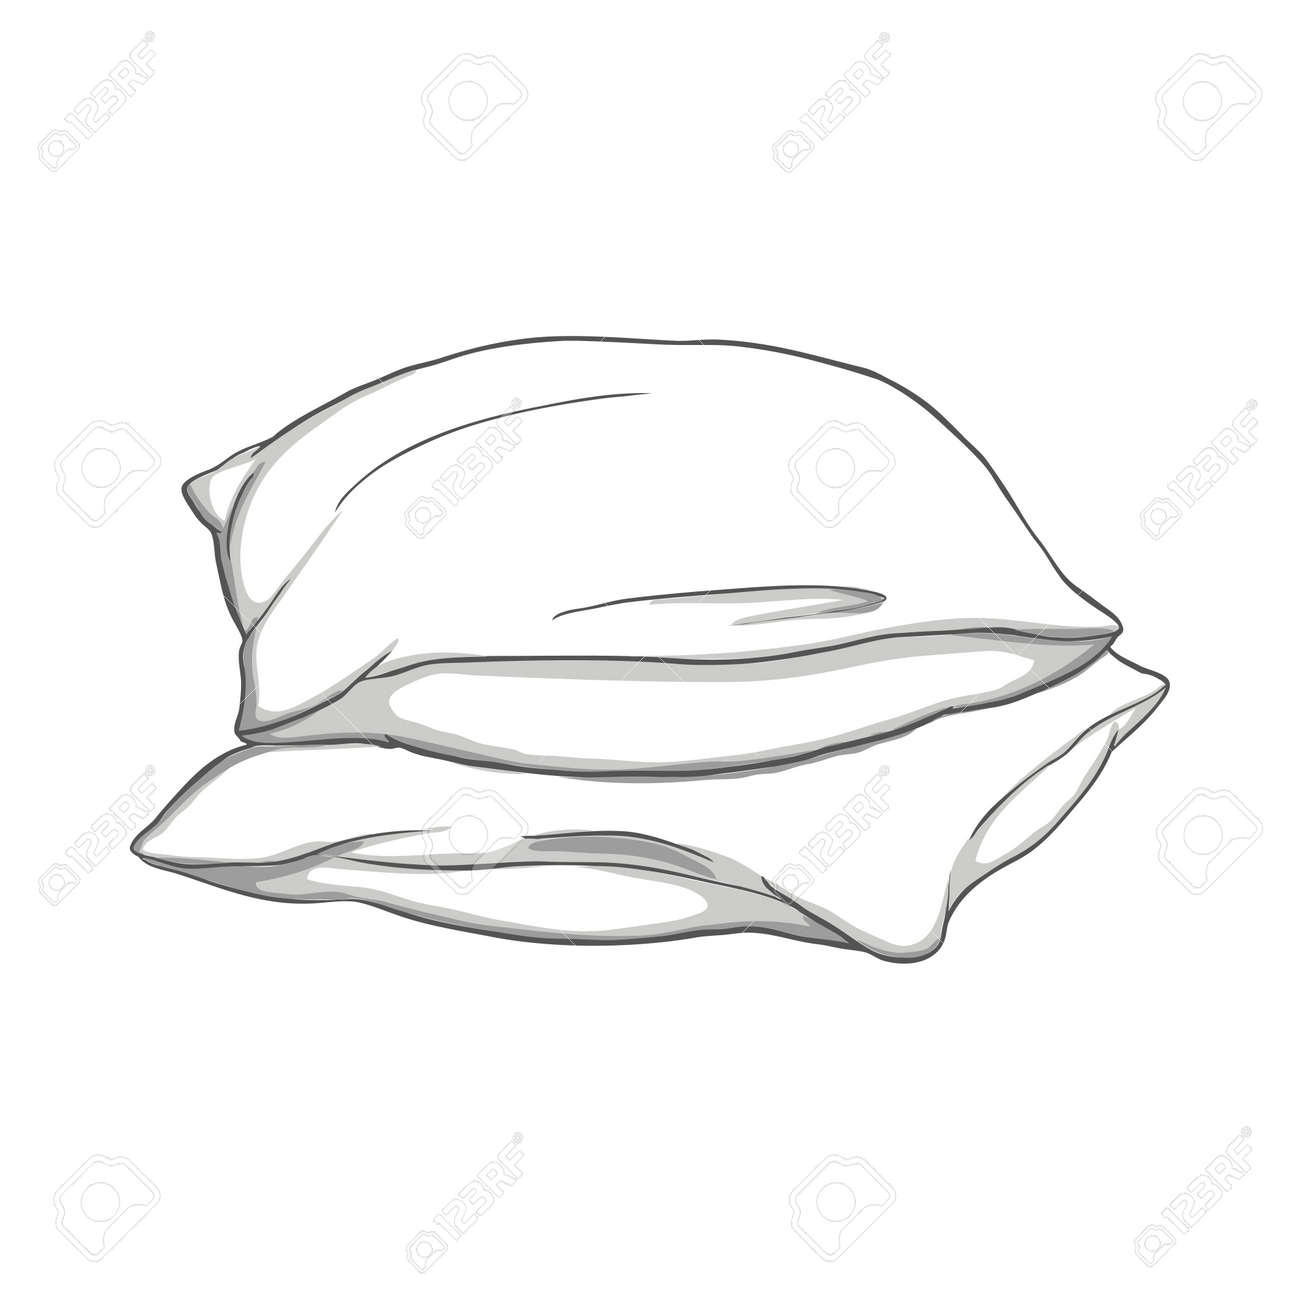 Pillow thin Line icon, sleep symbol, isolated on white background, vector Illustration - 168291130